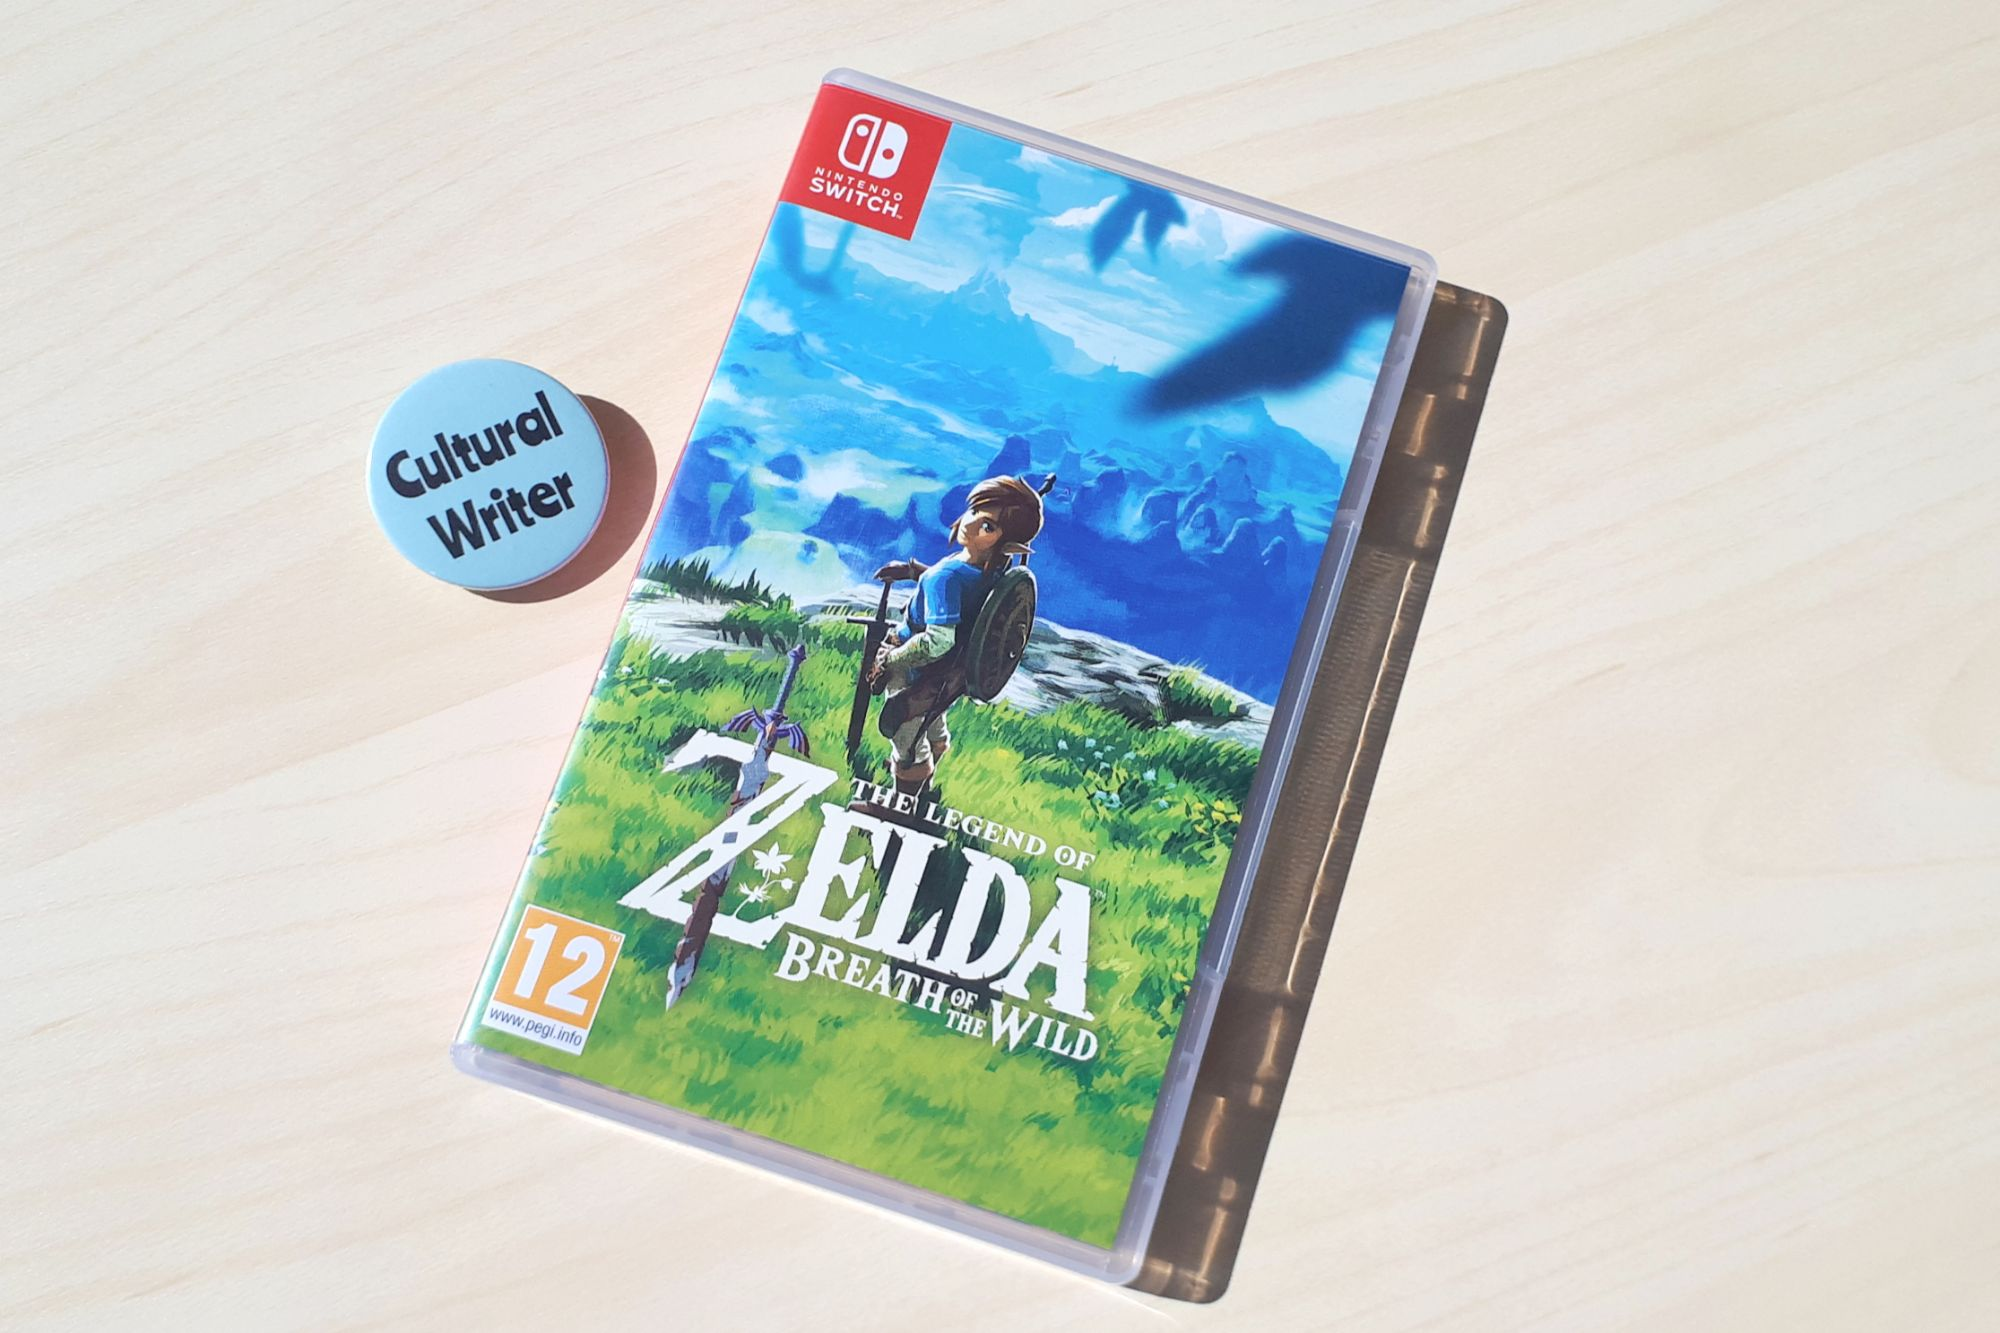 Breath of the Wild and Cultural Writer badge